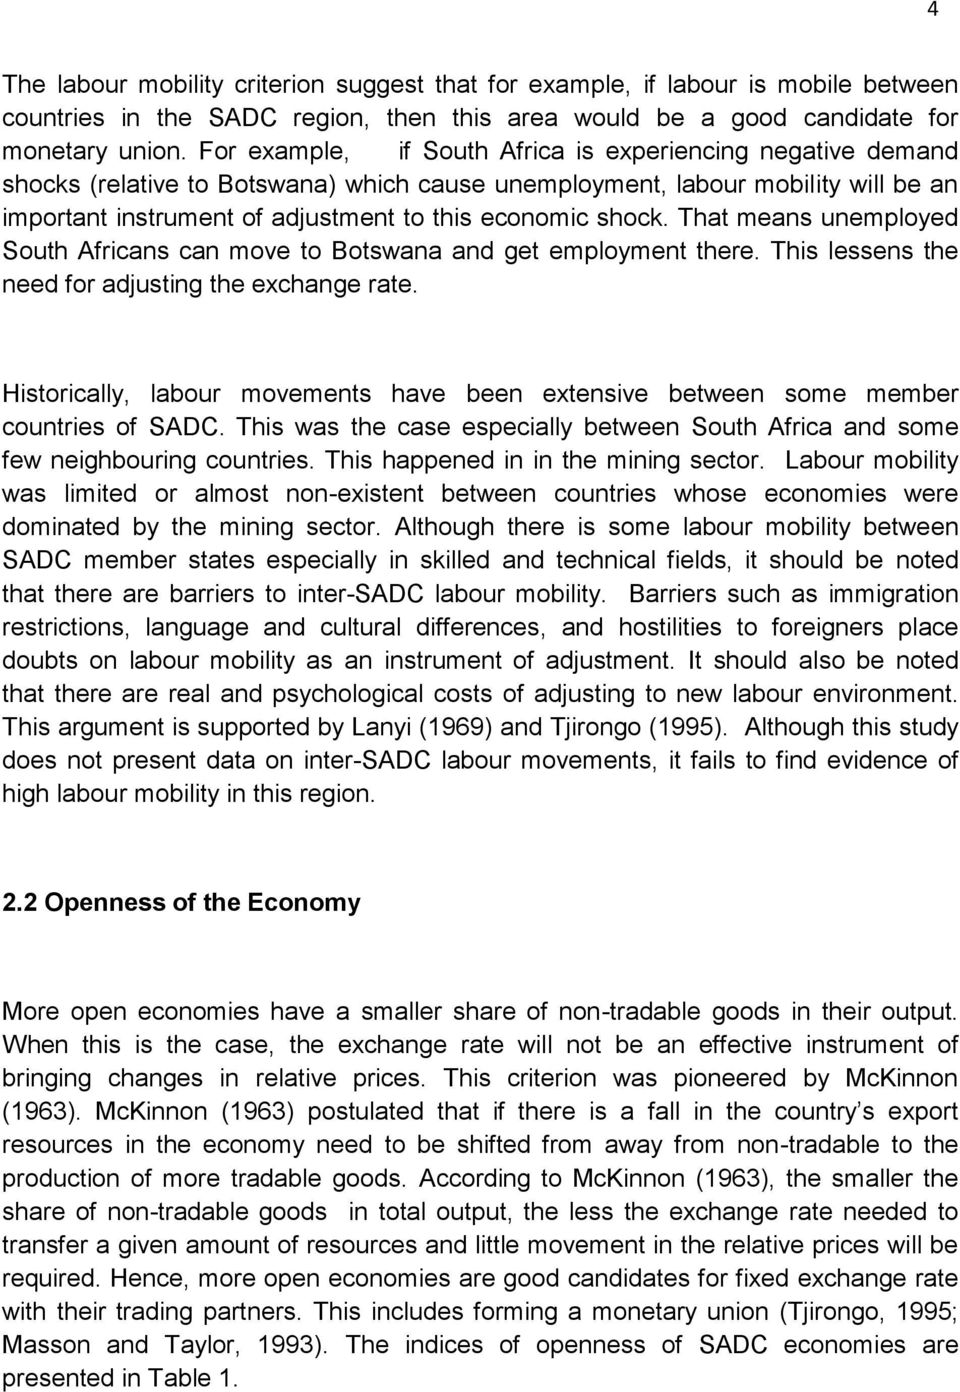 shock. That means unemployed South Africans can move to Botswana and get employment there. This lessens the need for adjusting the exchange rate.